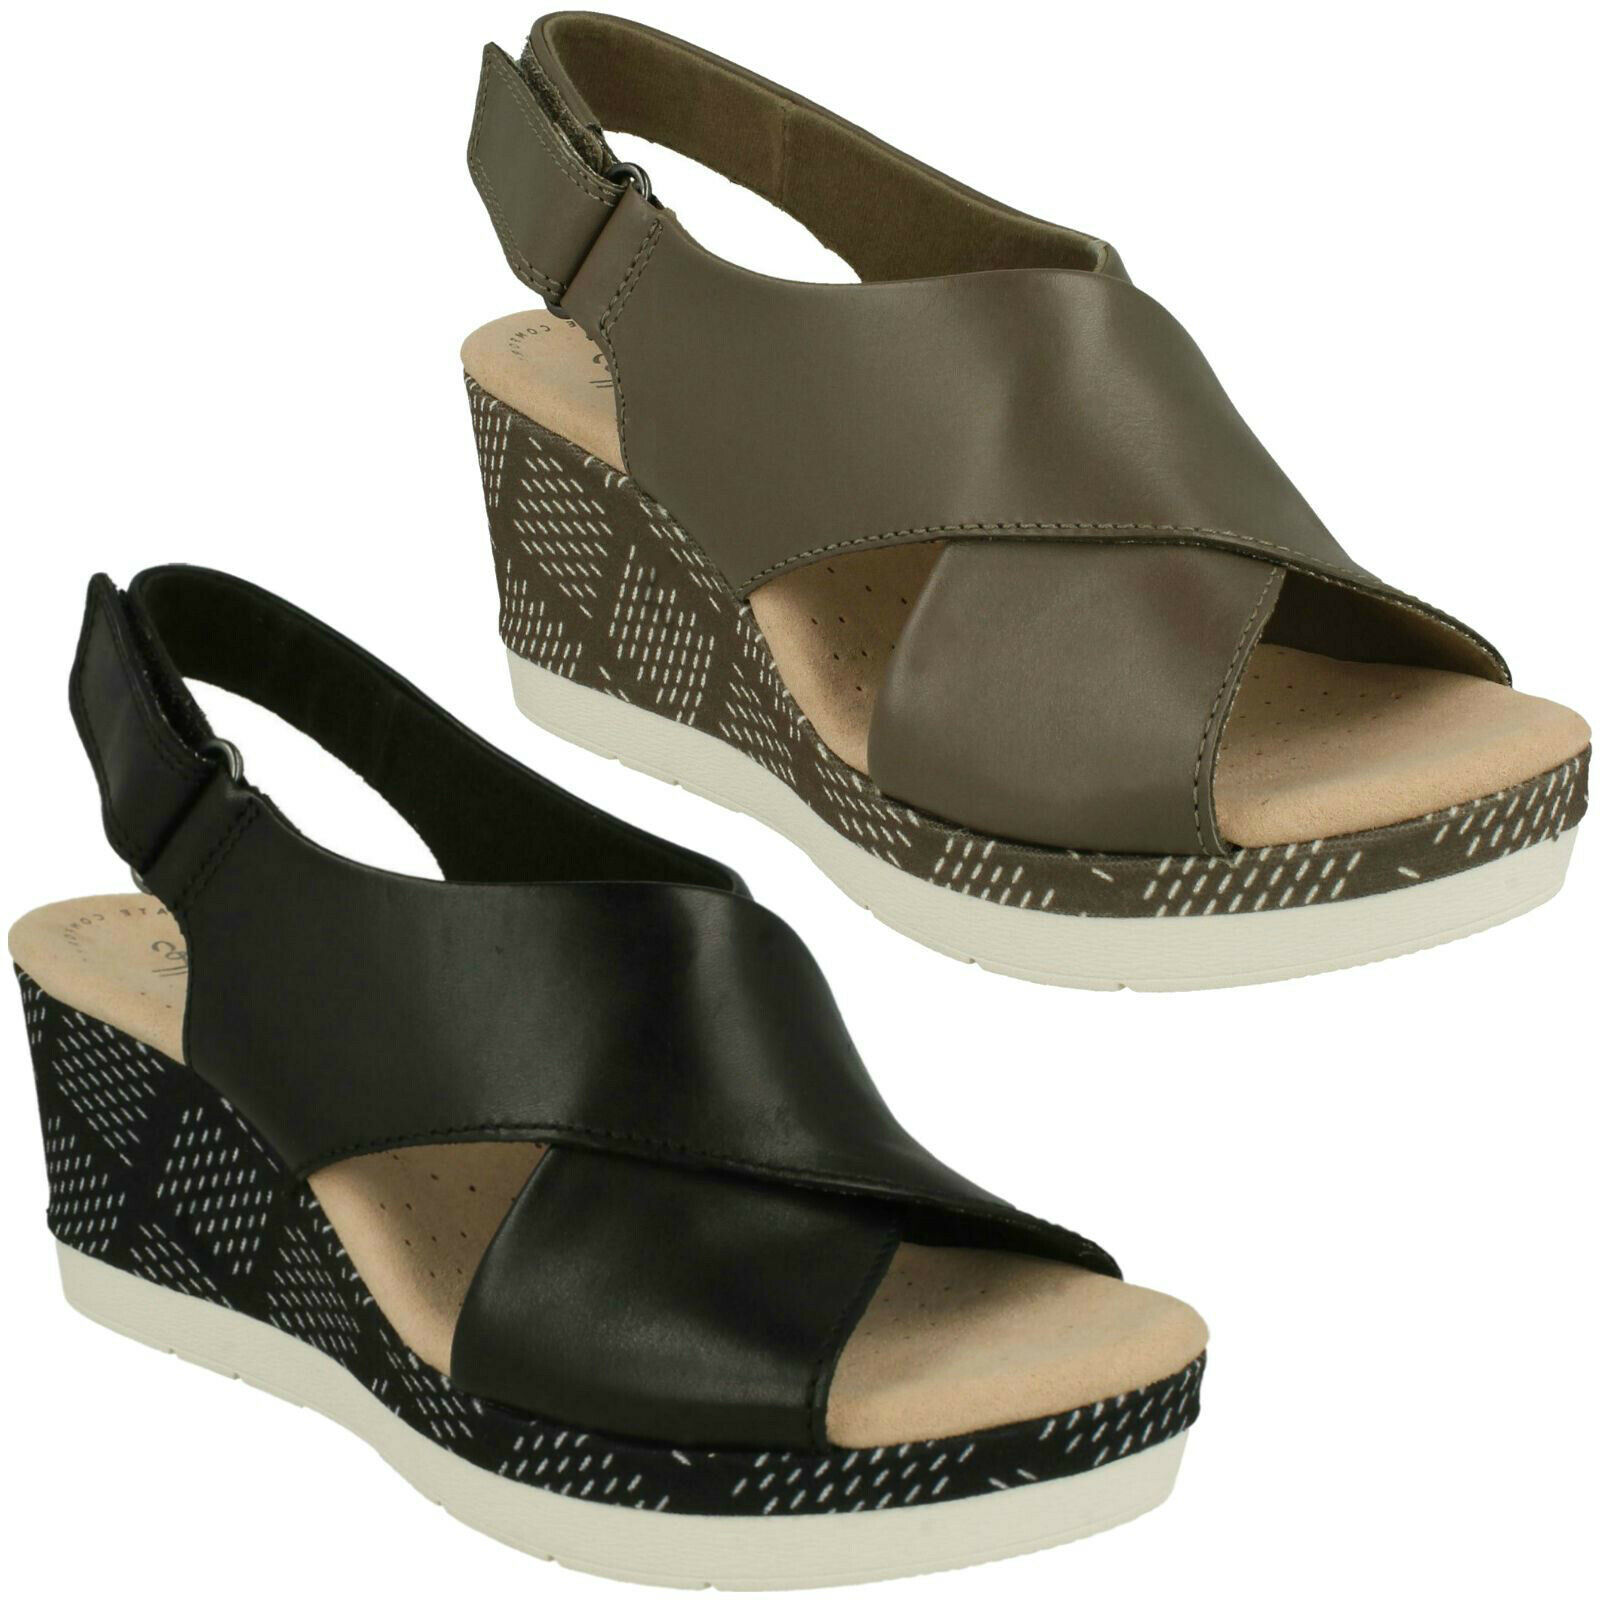 LADIES CLARKS CAMMY PEARL WEDGE HEEL CASUAL RIPTAPE SLINGBACK LEATHER SANDALS